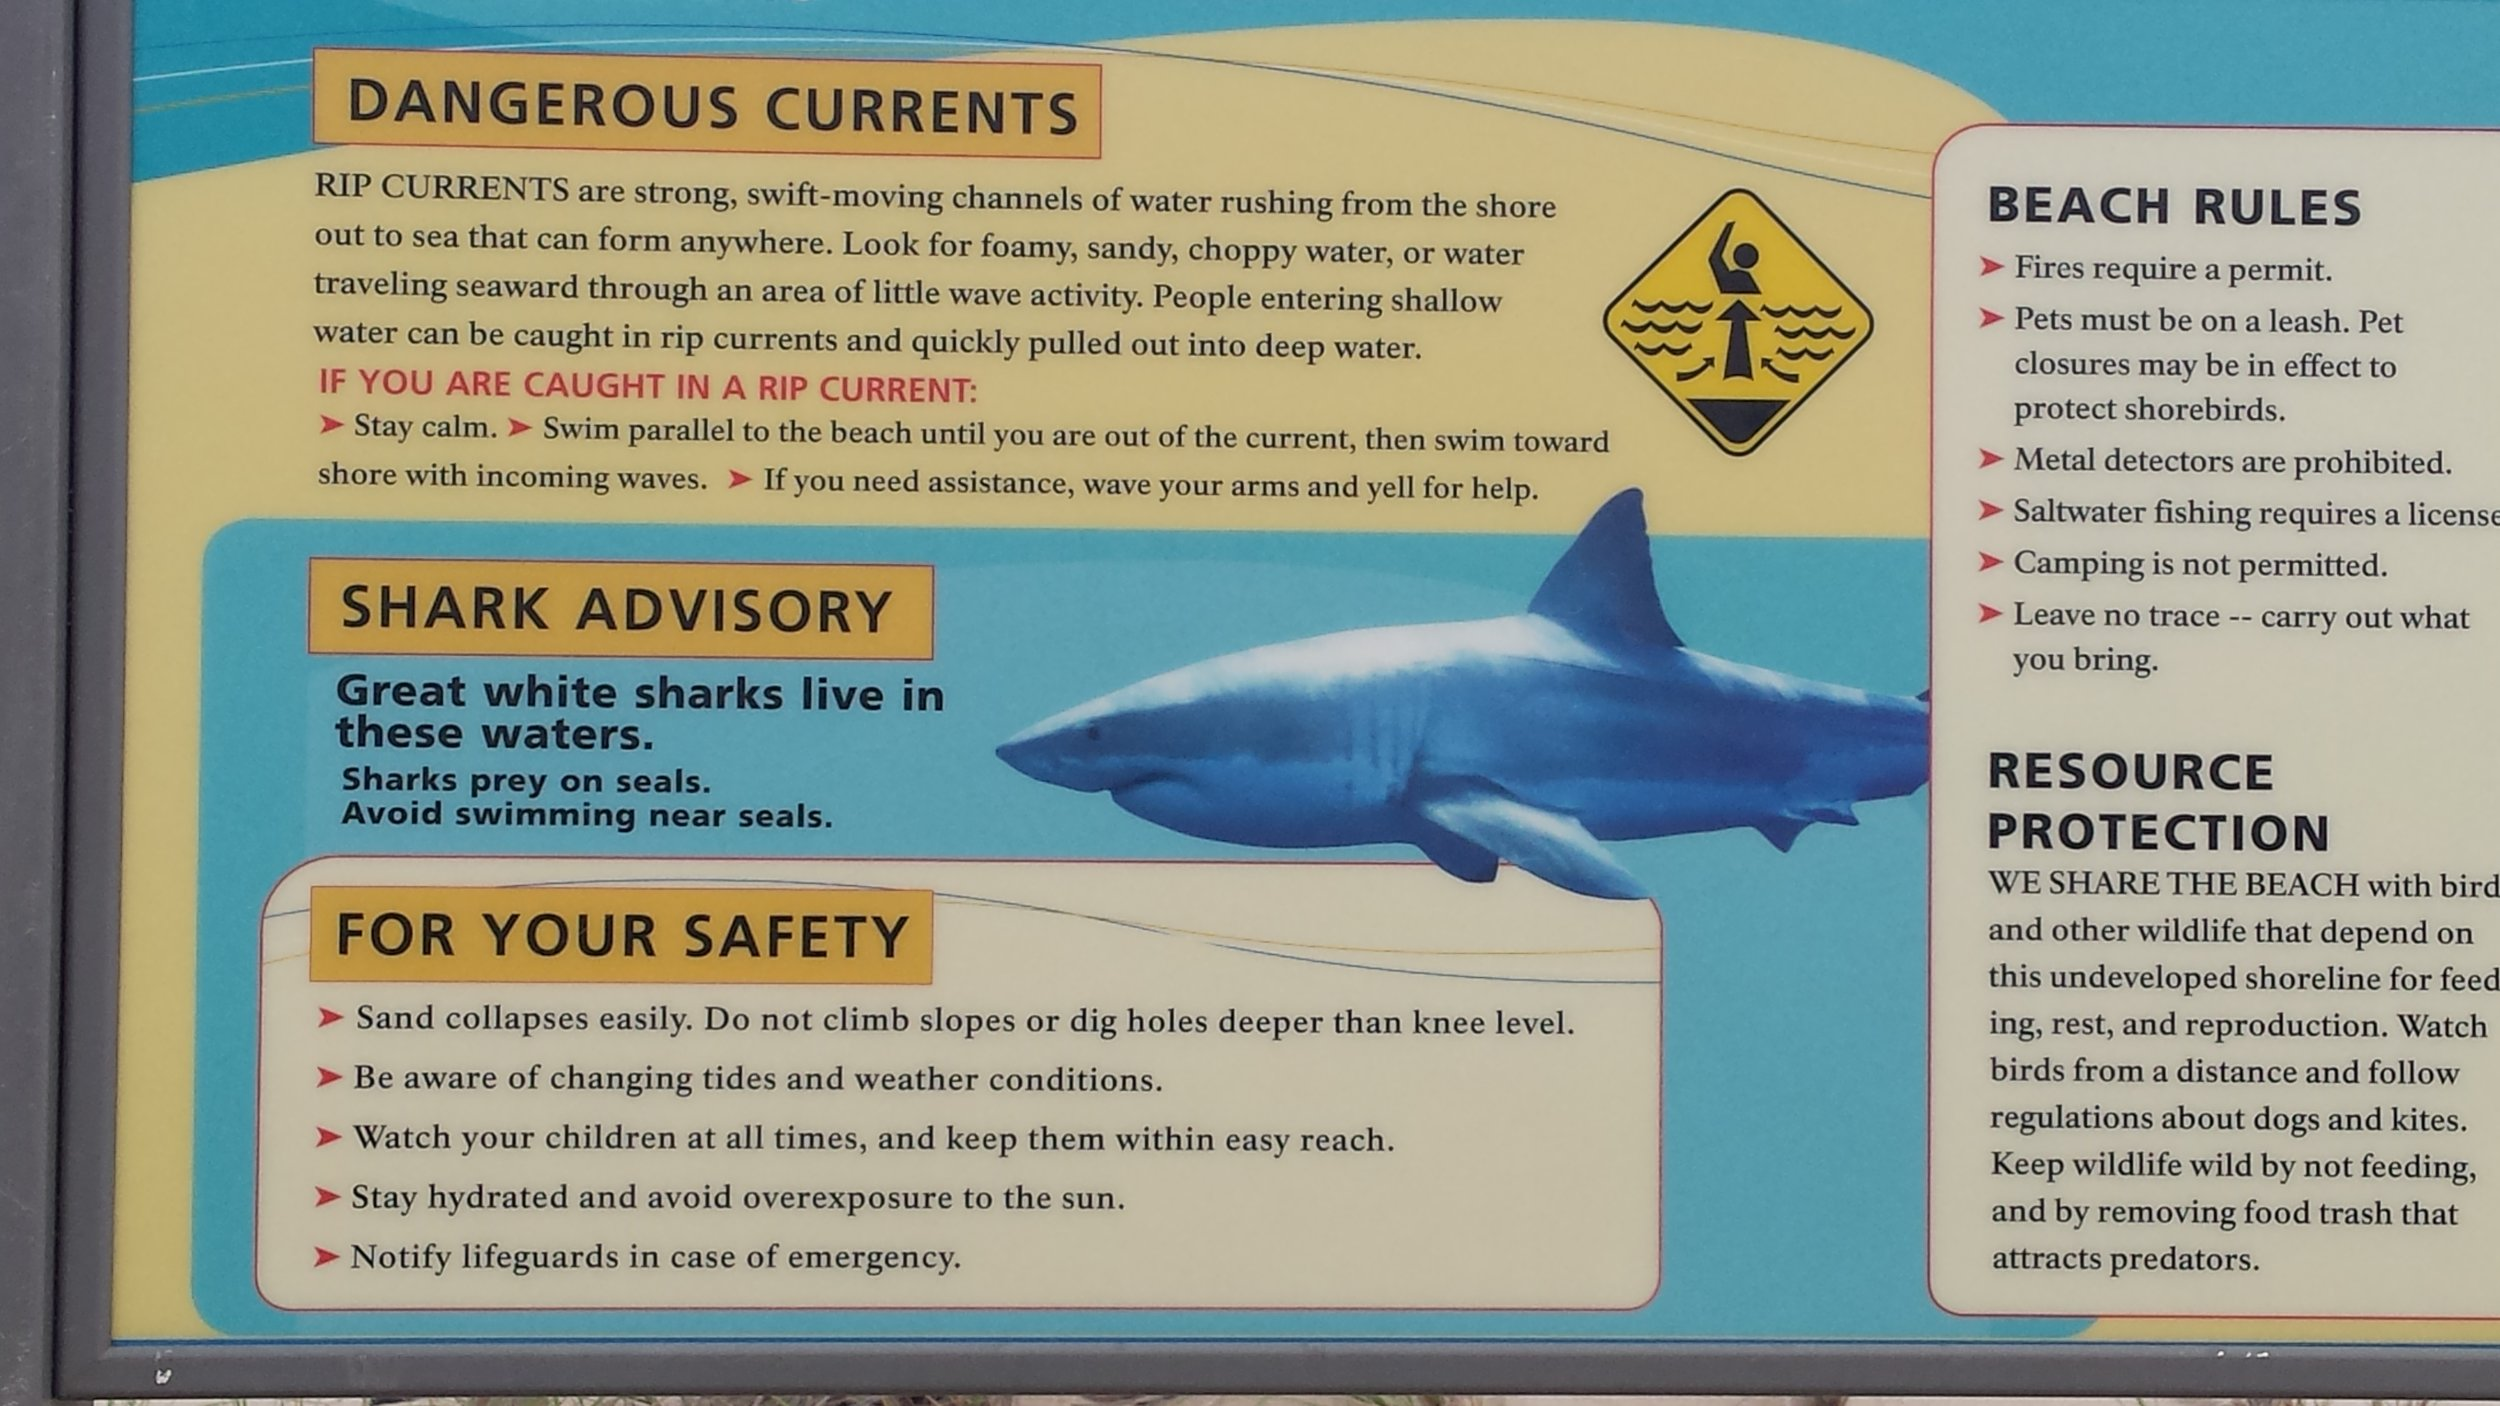 Yikes! Great White Sharks?!